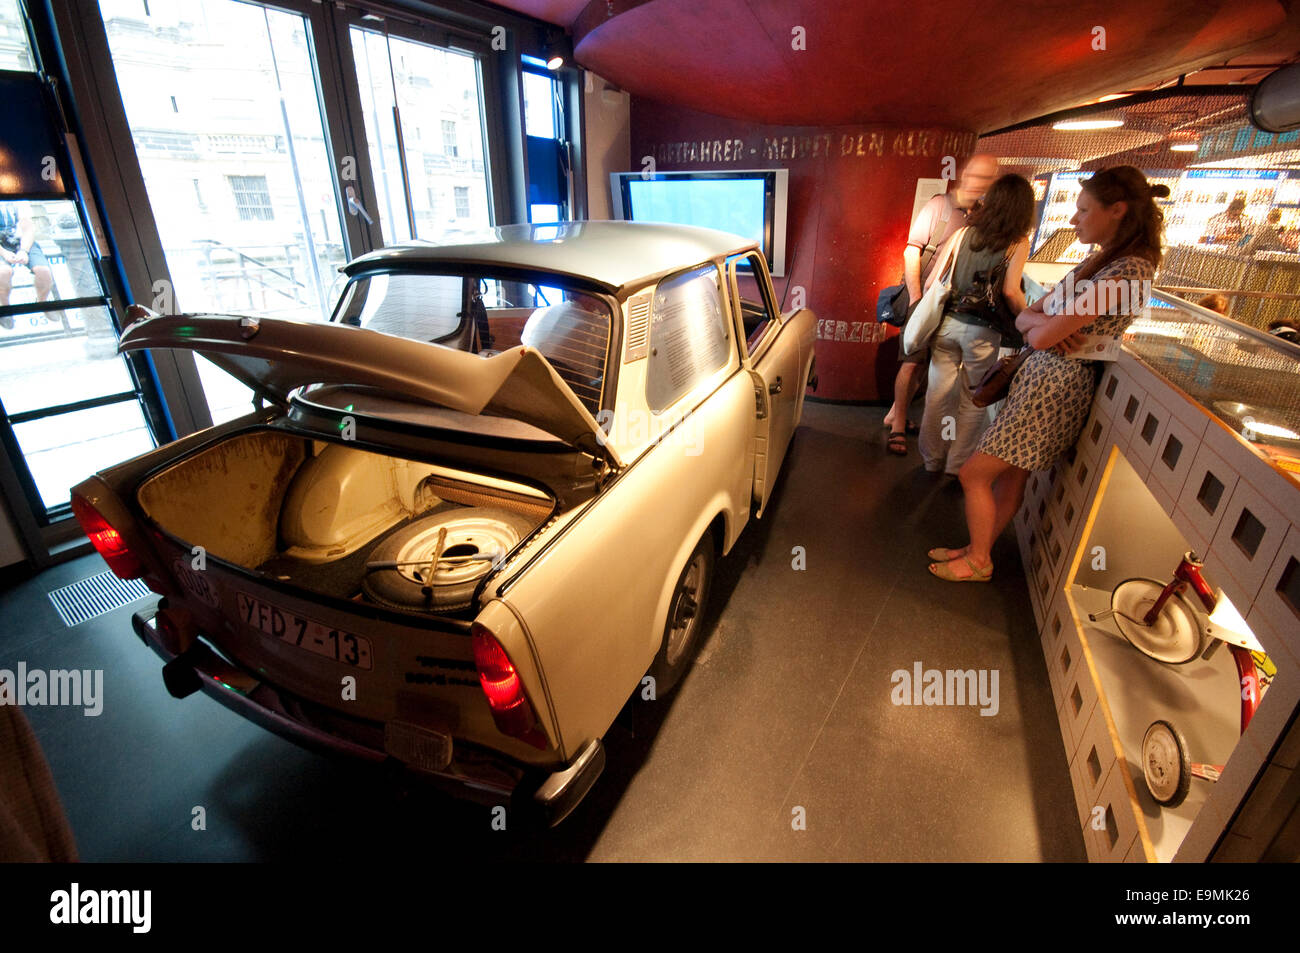 Germany, Berlin, DDR Museum, a museum opened in 2006 to recall the everyday life of former East Germany - Stock Image